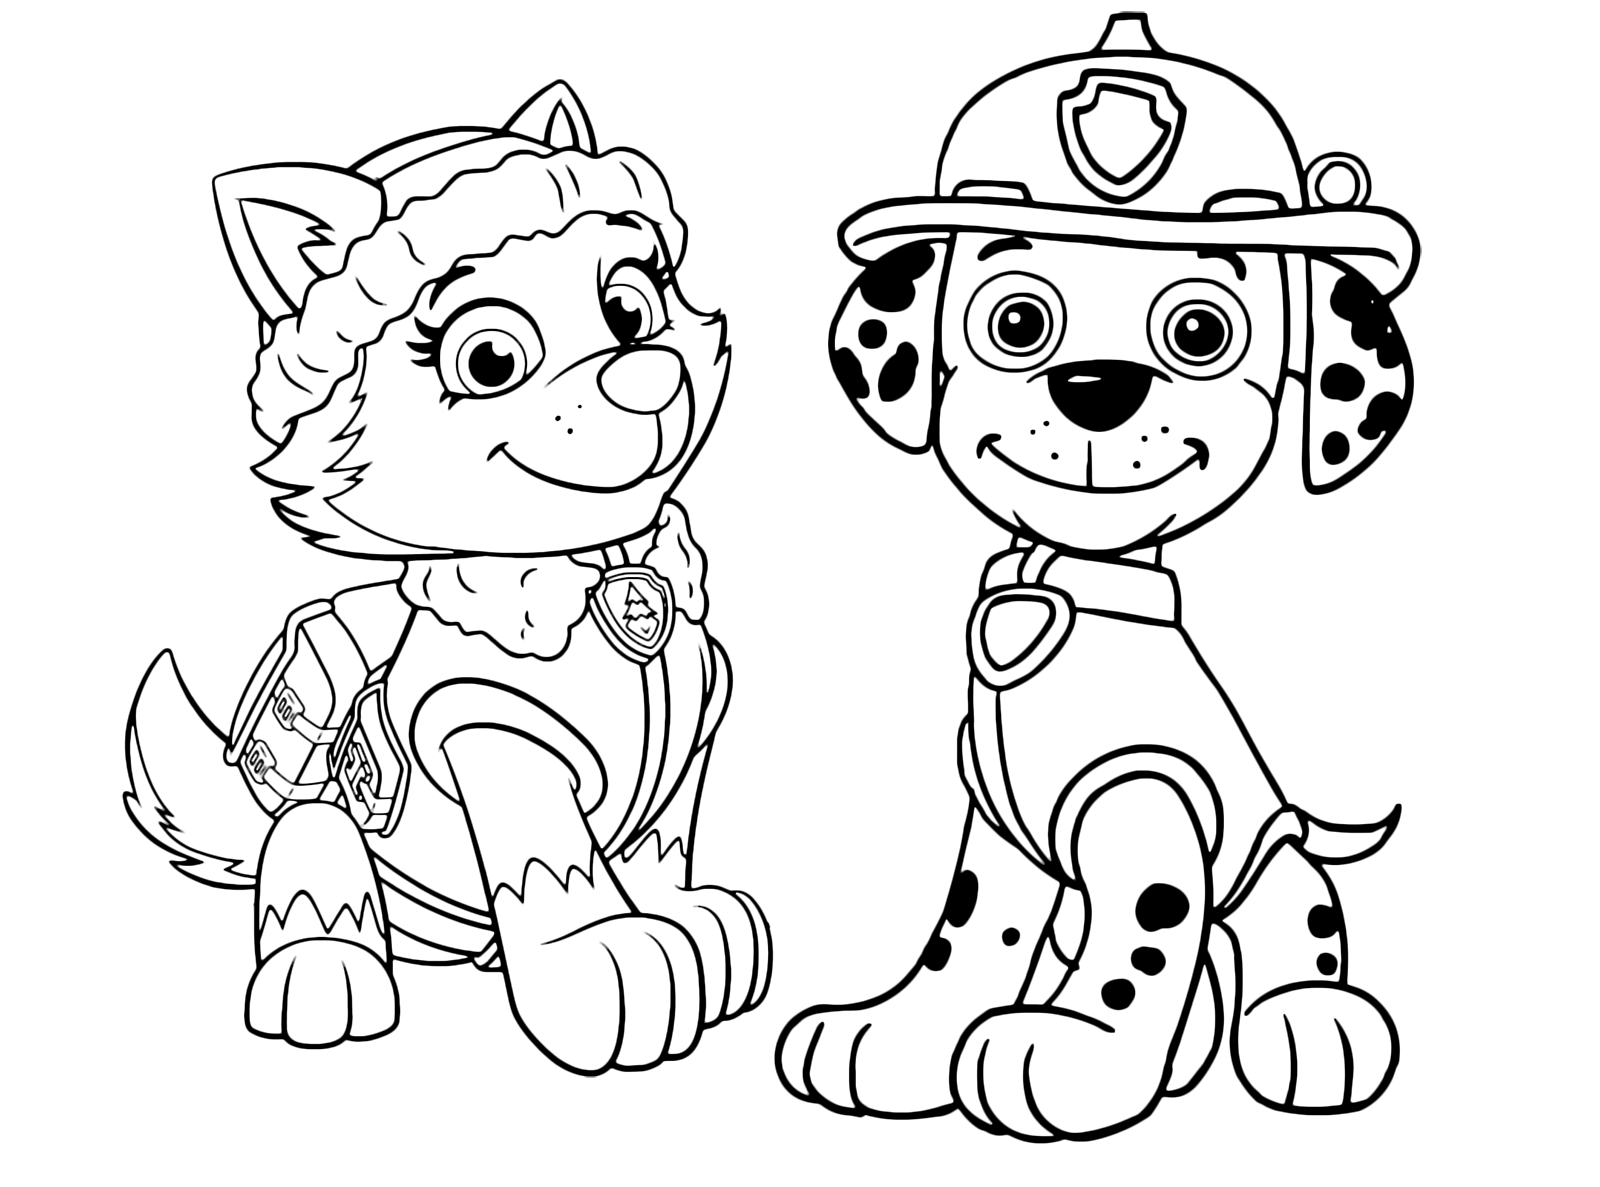 paw patrol coloring outline everest paw patrol coloring lesson kids coloring page coloring paw patrol outline